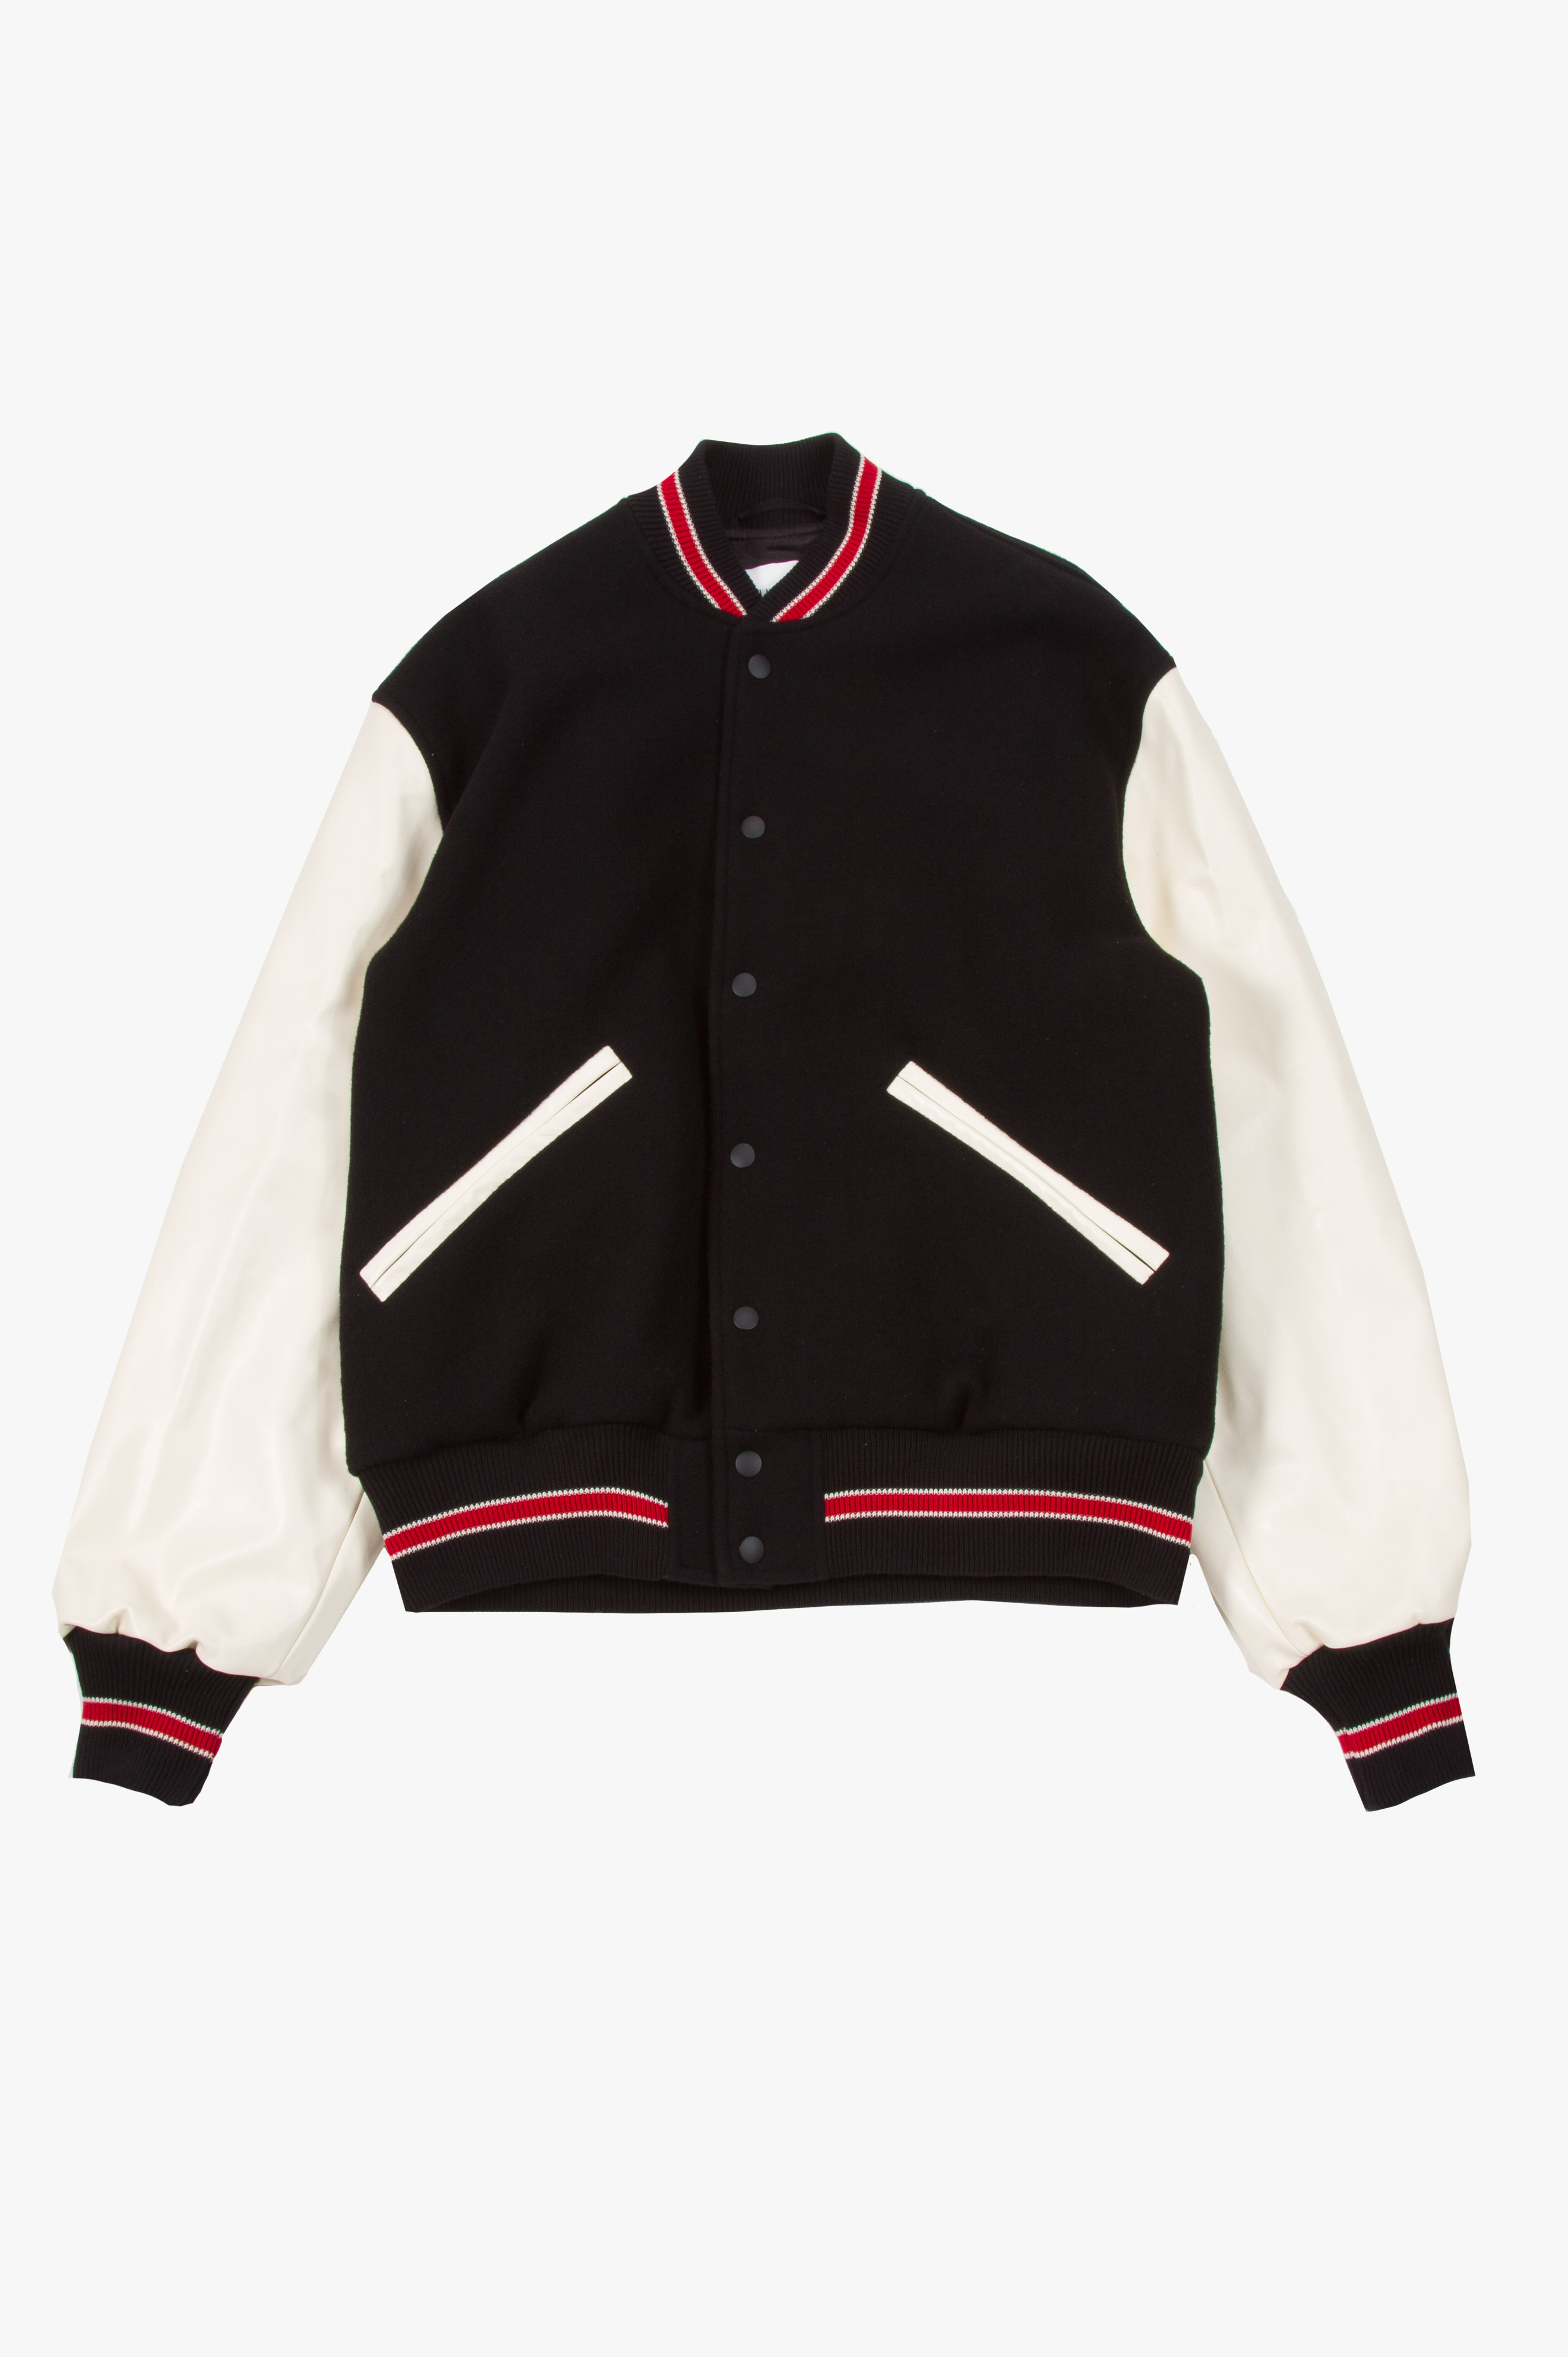 Trophy Jacket Black / White